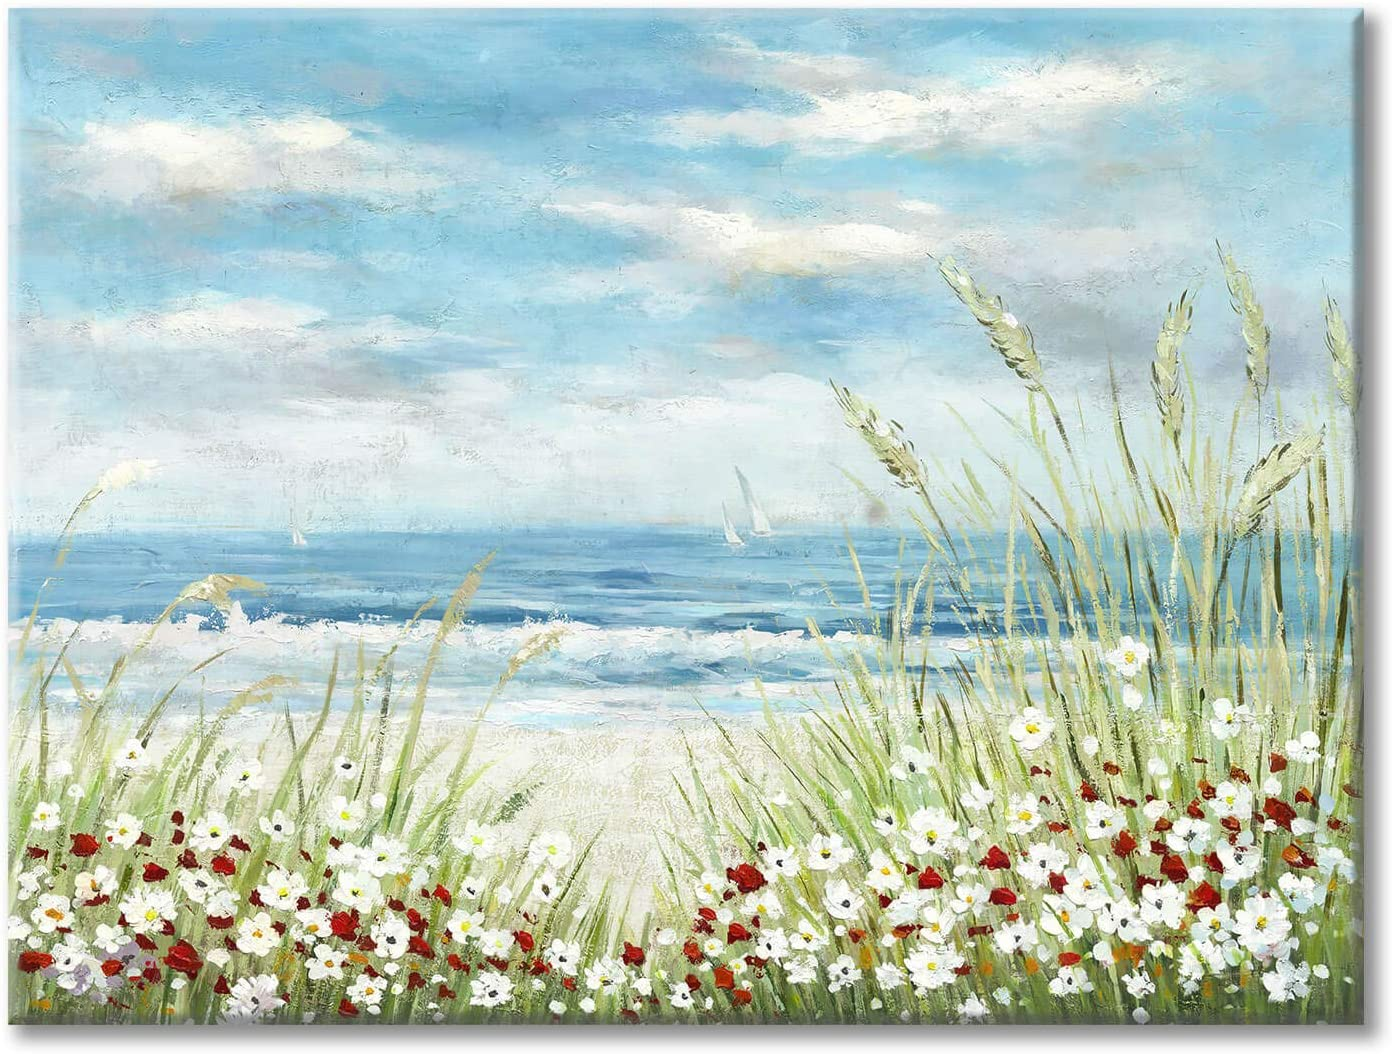 "Beach Scene Canvas Wall Art: Seaside White Wildflower & Blue Ocean Seascape Painting Picture Artwork for Bedroom Wall Decoration (24"" x 18'' x 1 Panel)"